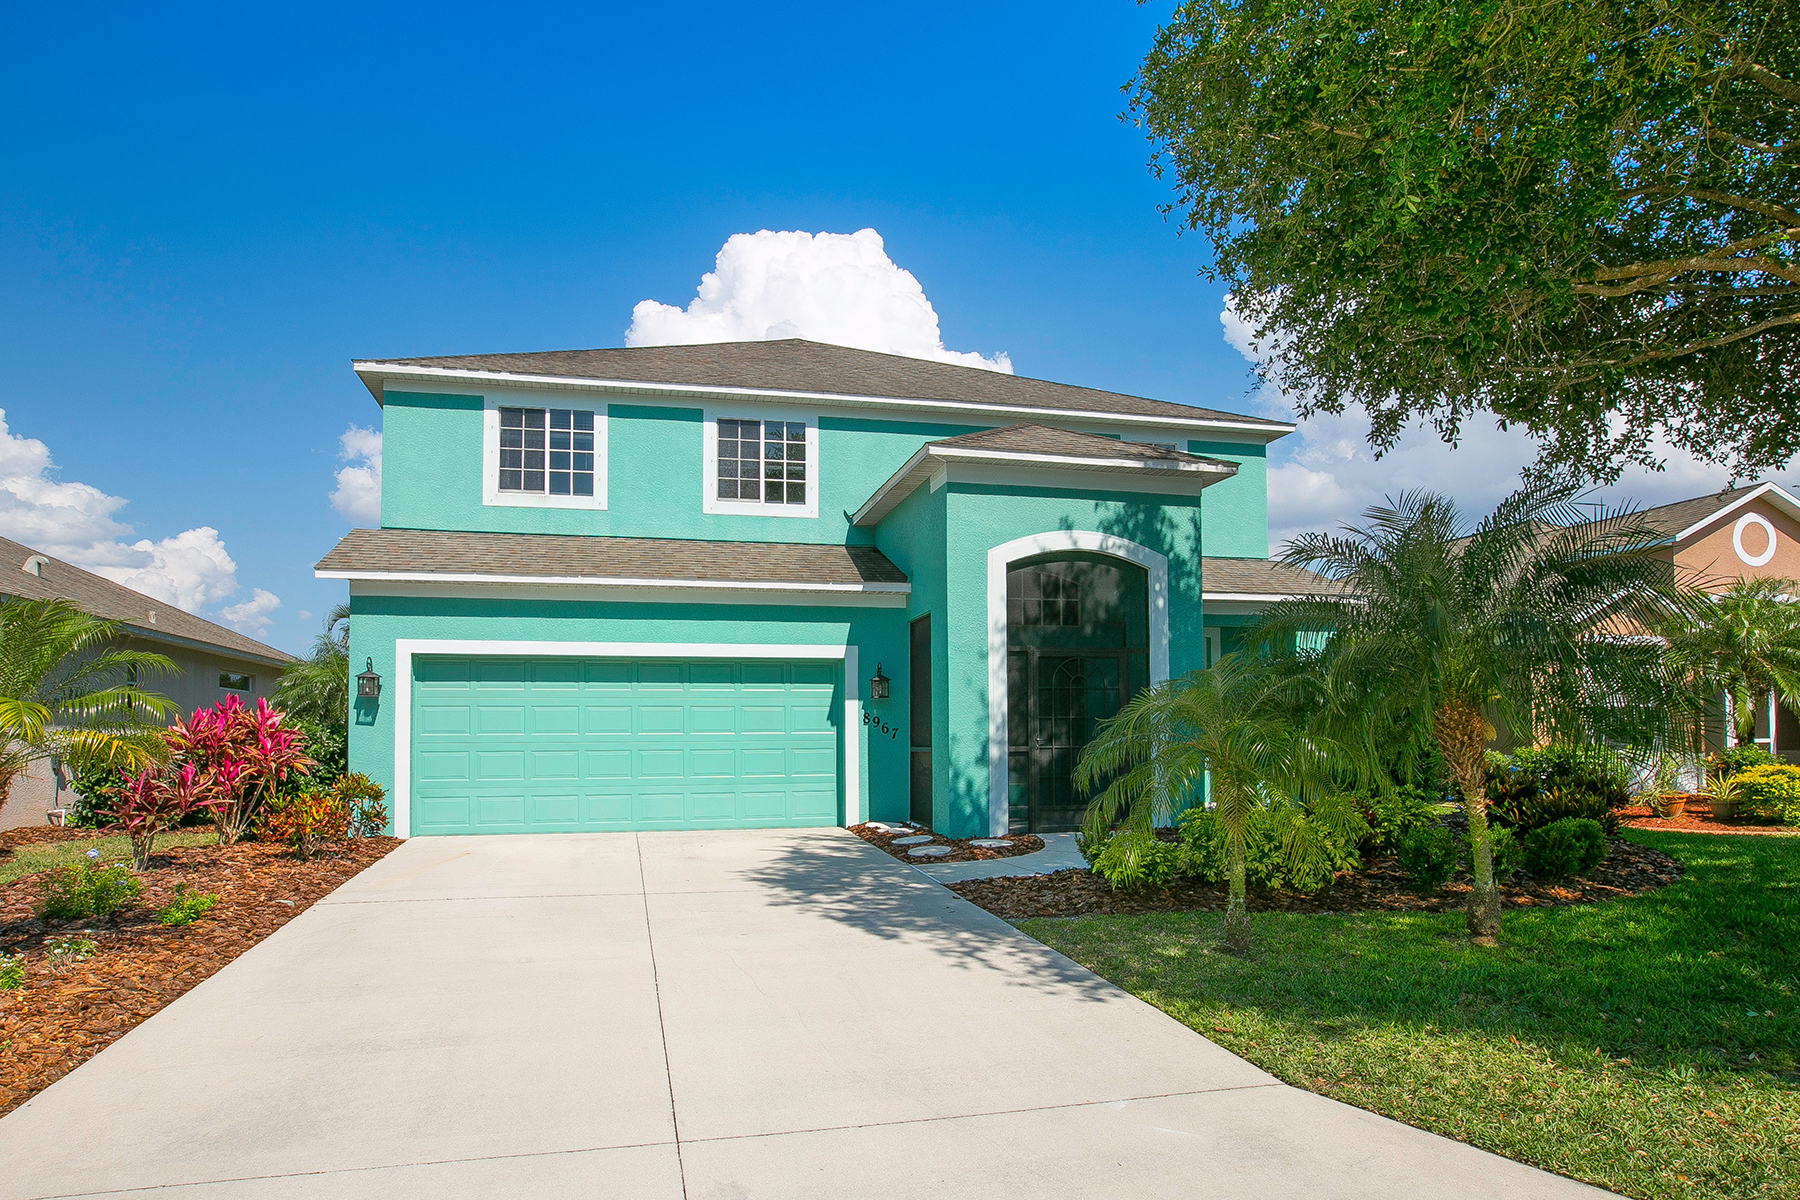 Single Family Home for Sale at FAIRWAYS AT IMPERIAL LAKEWOODS 8967 Founders Cir Palmetto, Florida, 34221 United States